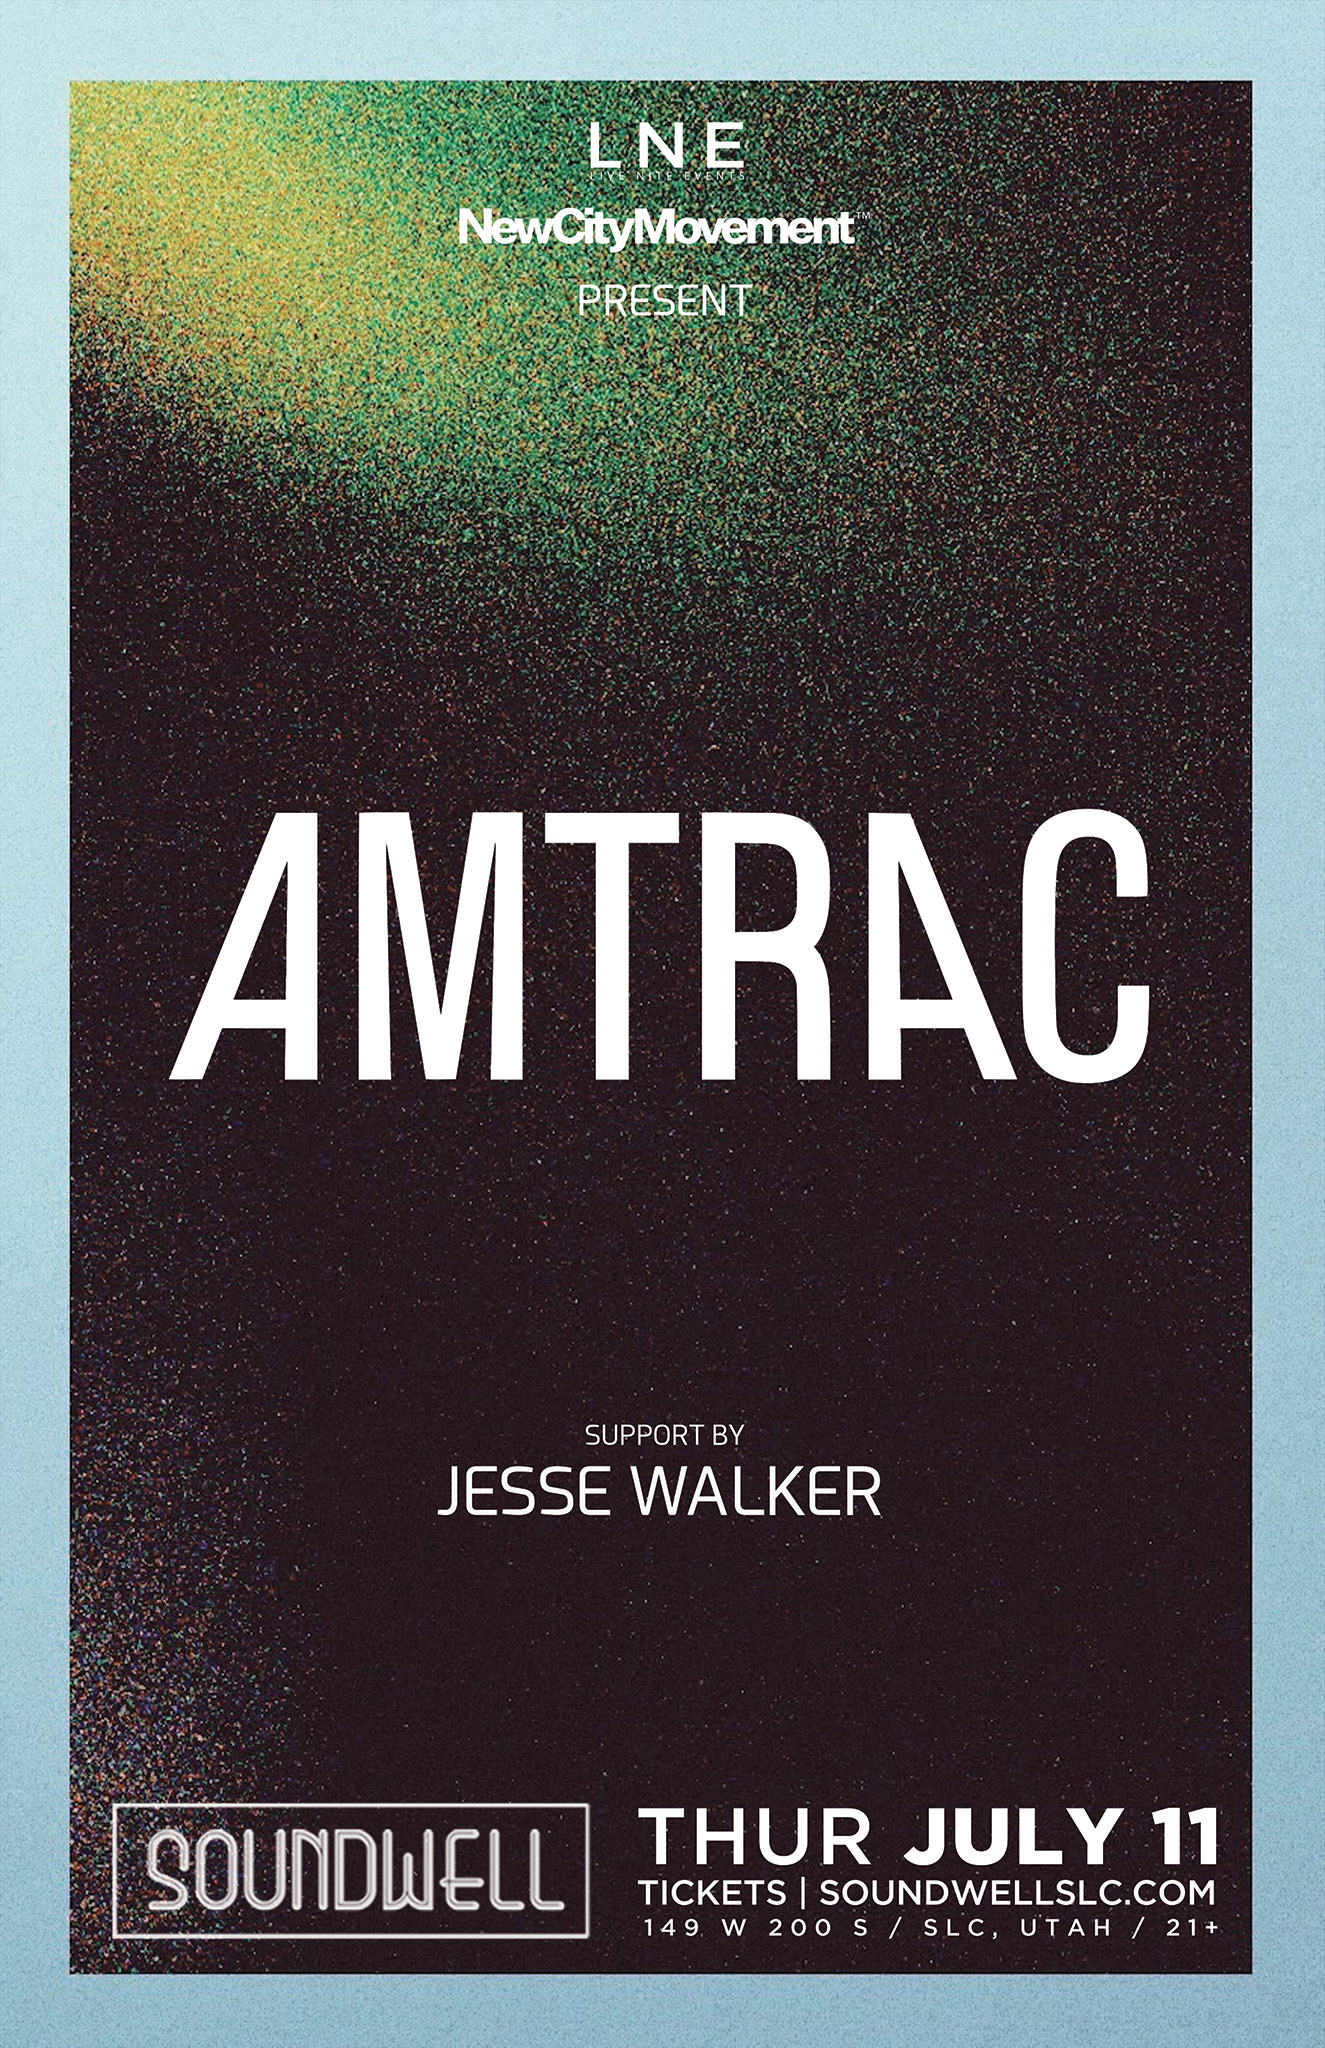 Amtrac-Jesse Walker-Soundwell.jpg